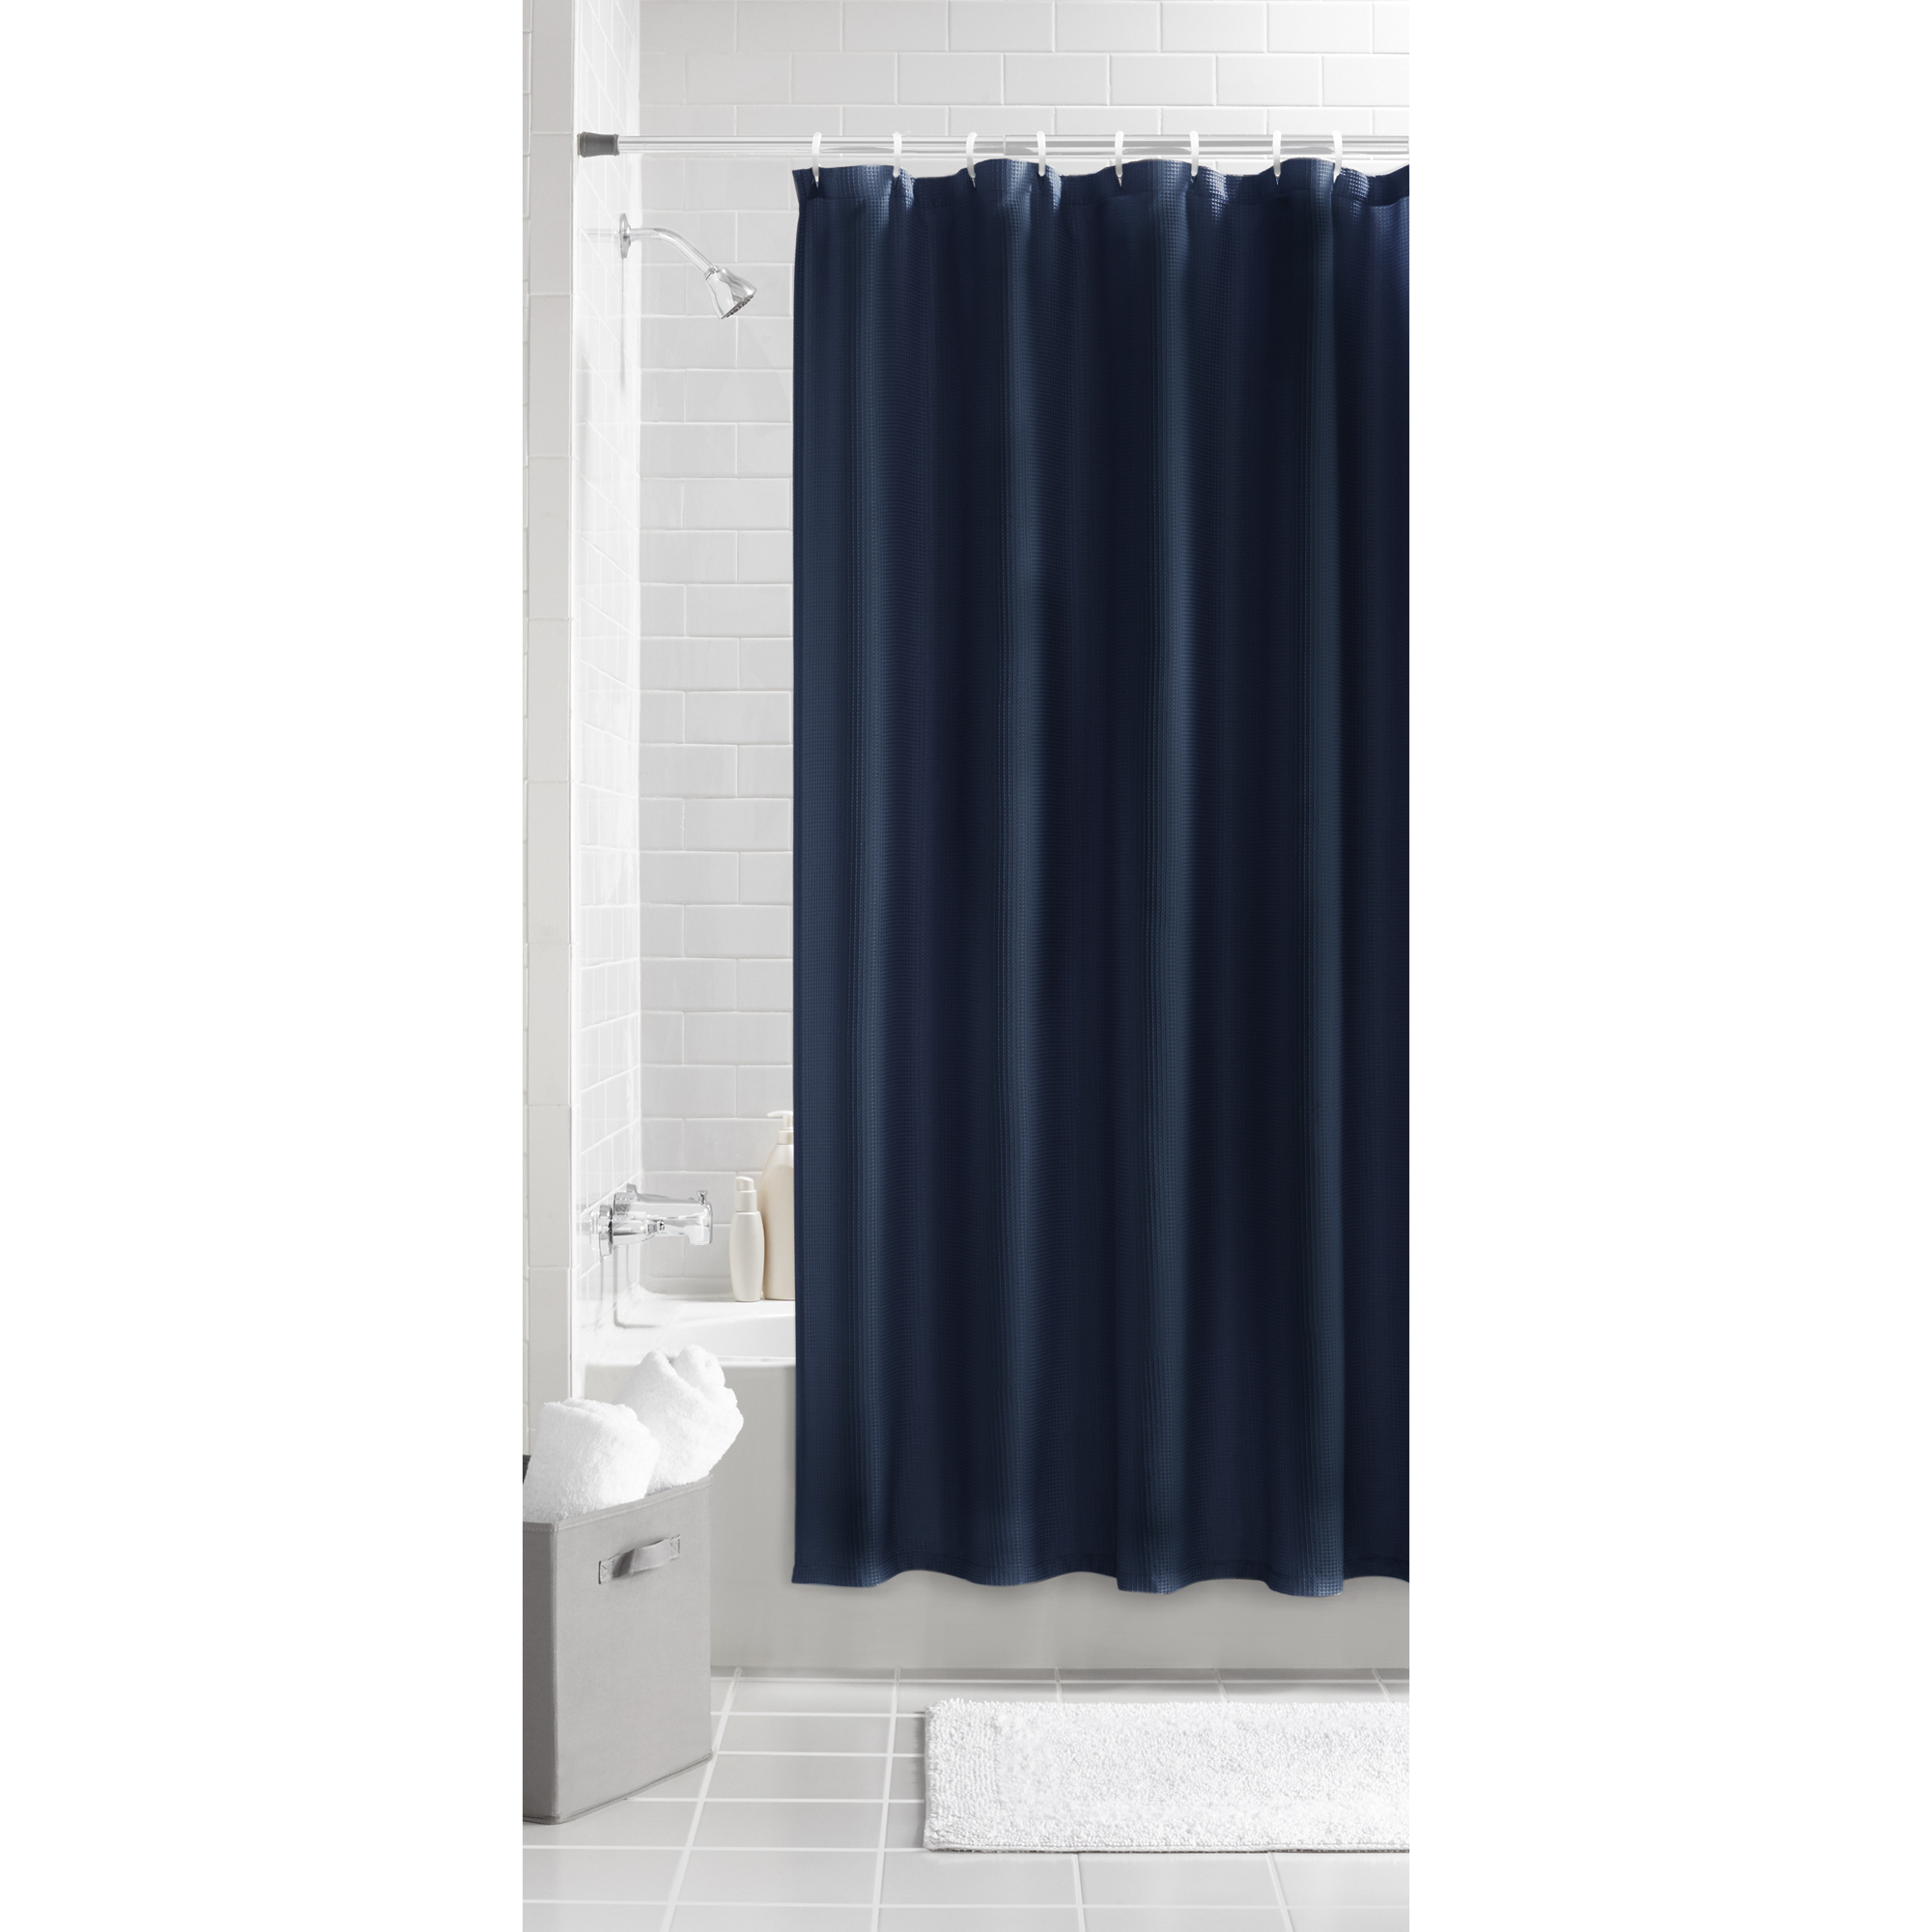 Waffle Fabric Shower Curtain Collection Can Help To Create A Soft And Welcoming Effect In Your Bathroom Space It Offers Soothing Spa Feel With Quality